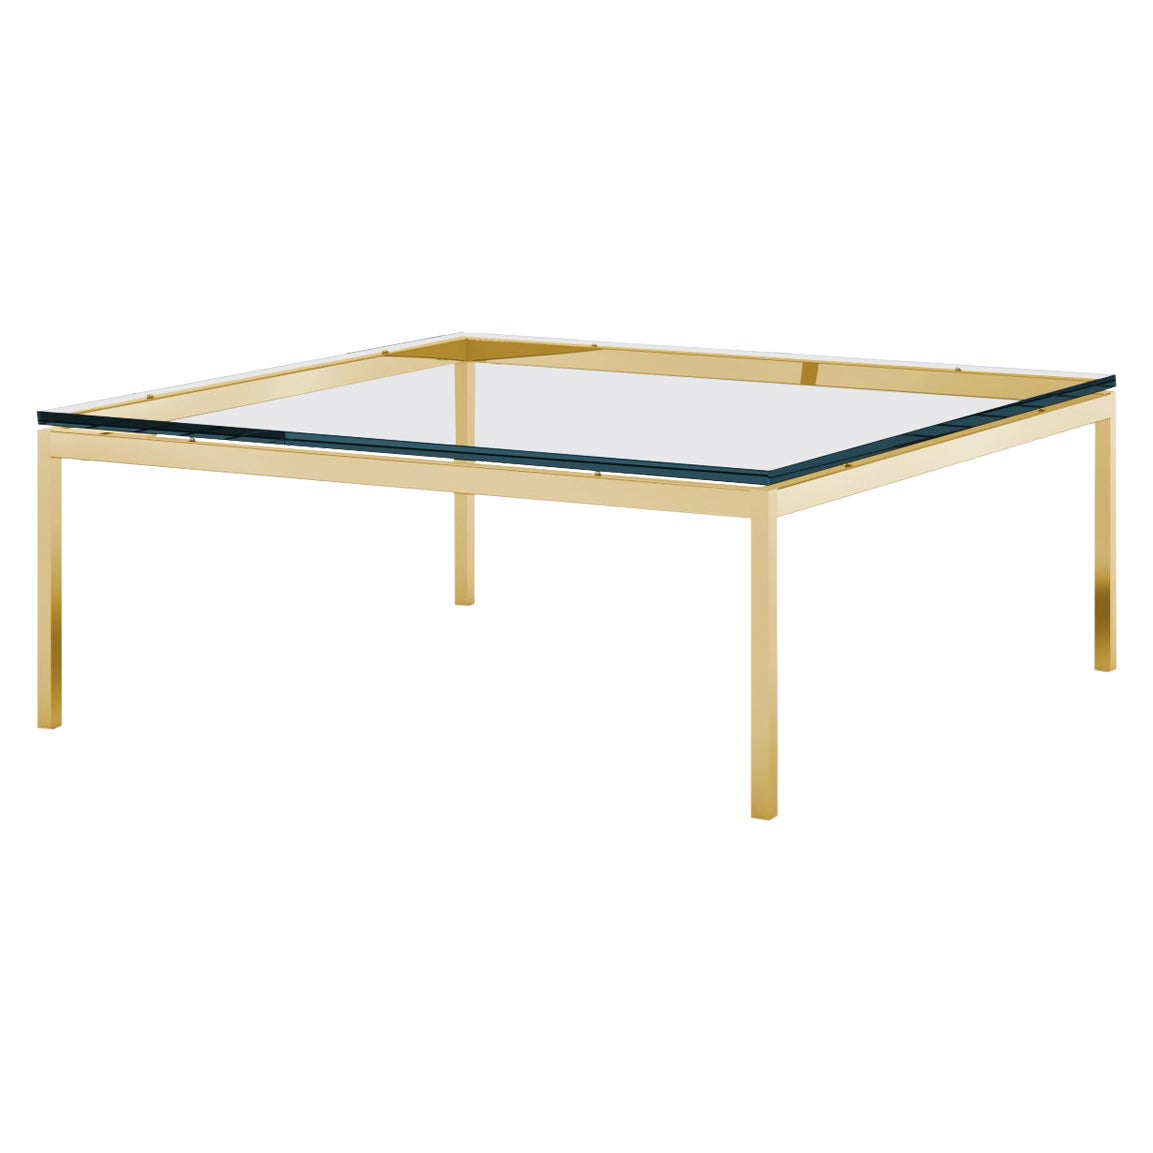 Florence Knoll Square Low Coffee Table, Glass Top & Gold Frame